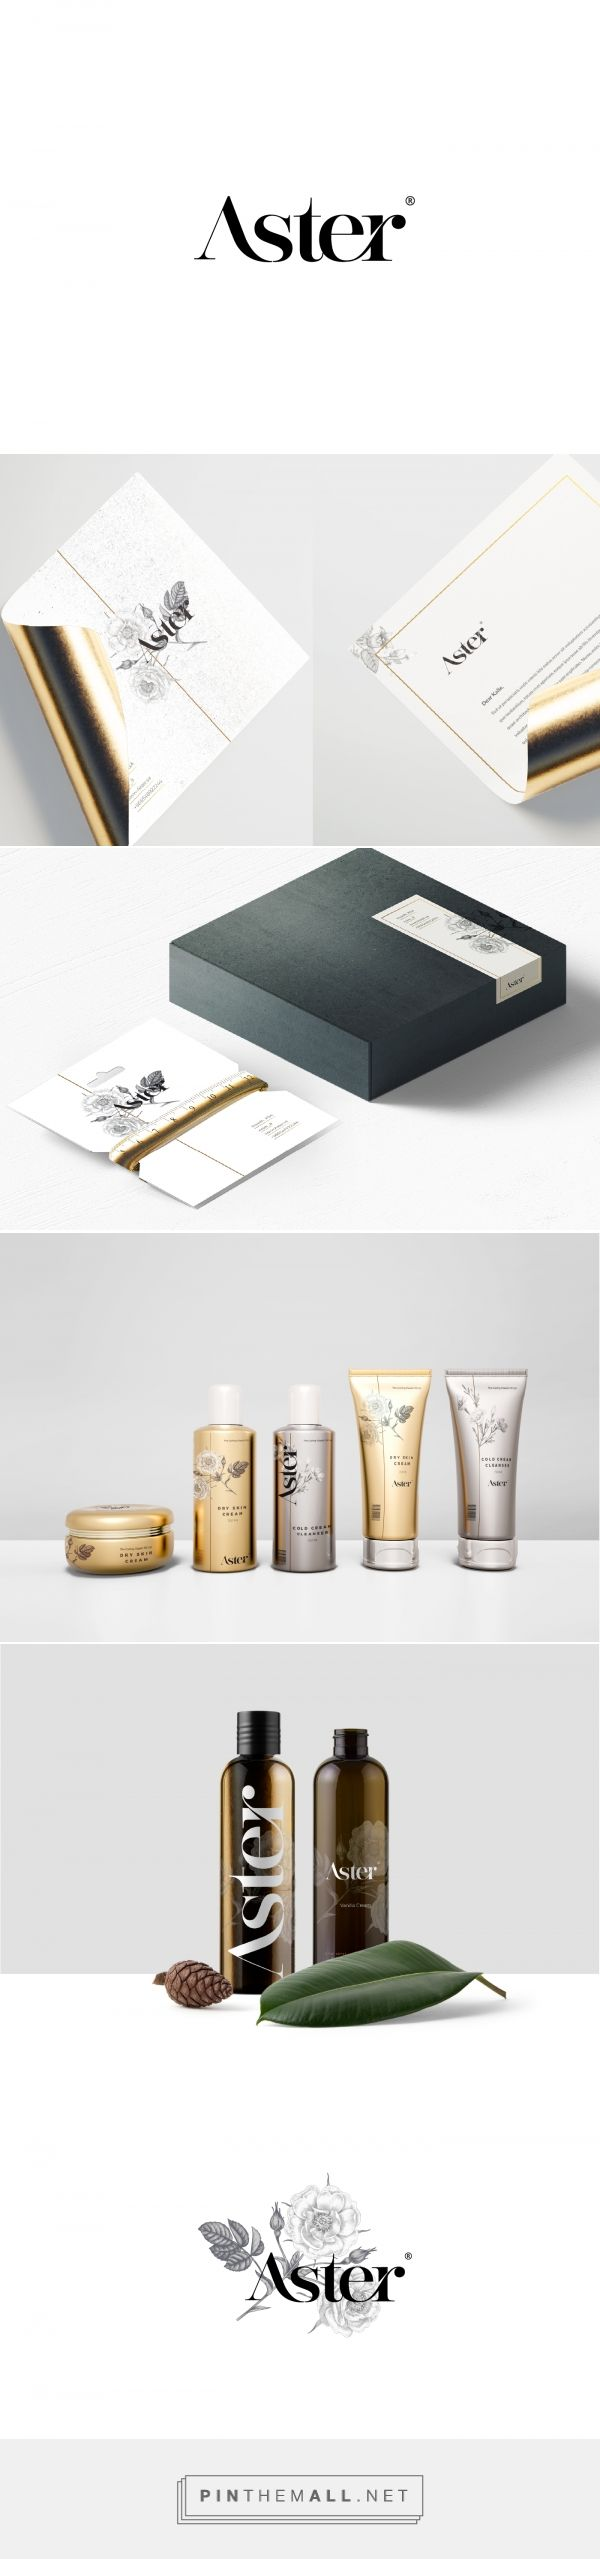 Aster Skin Care Branding and Packaging by Ibraheem Alshwihi | Fivestar Branding Agency – Design and Branding Agency & Curated Inspiration Gallery